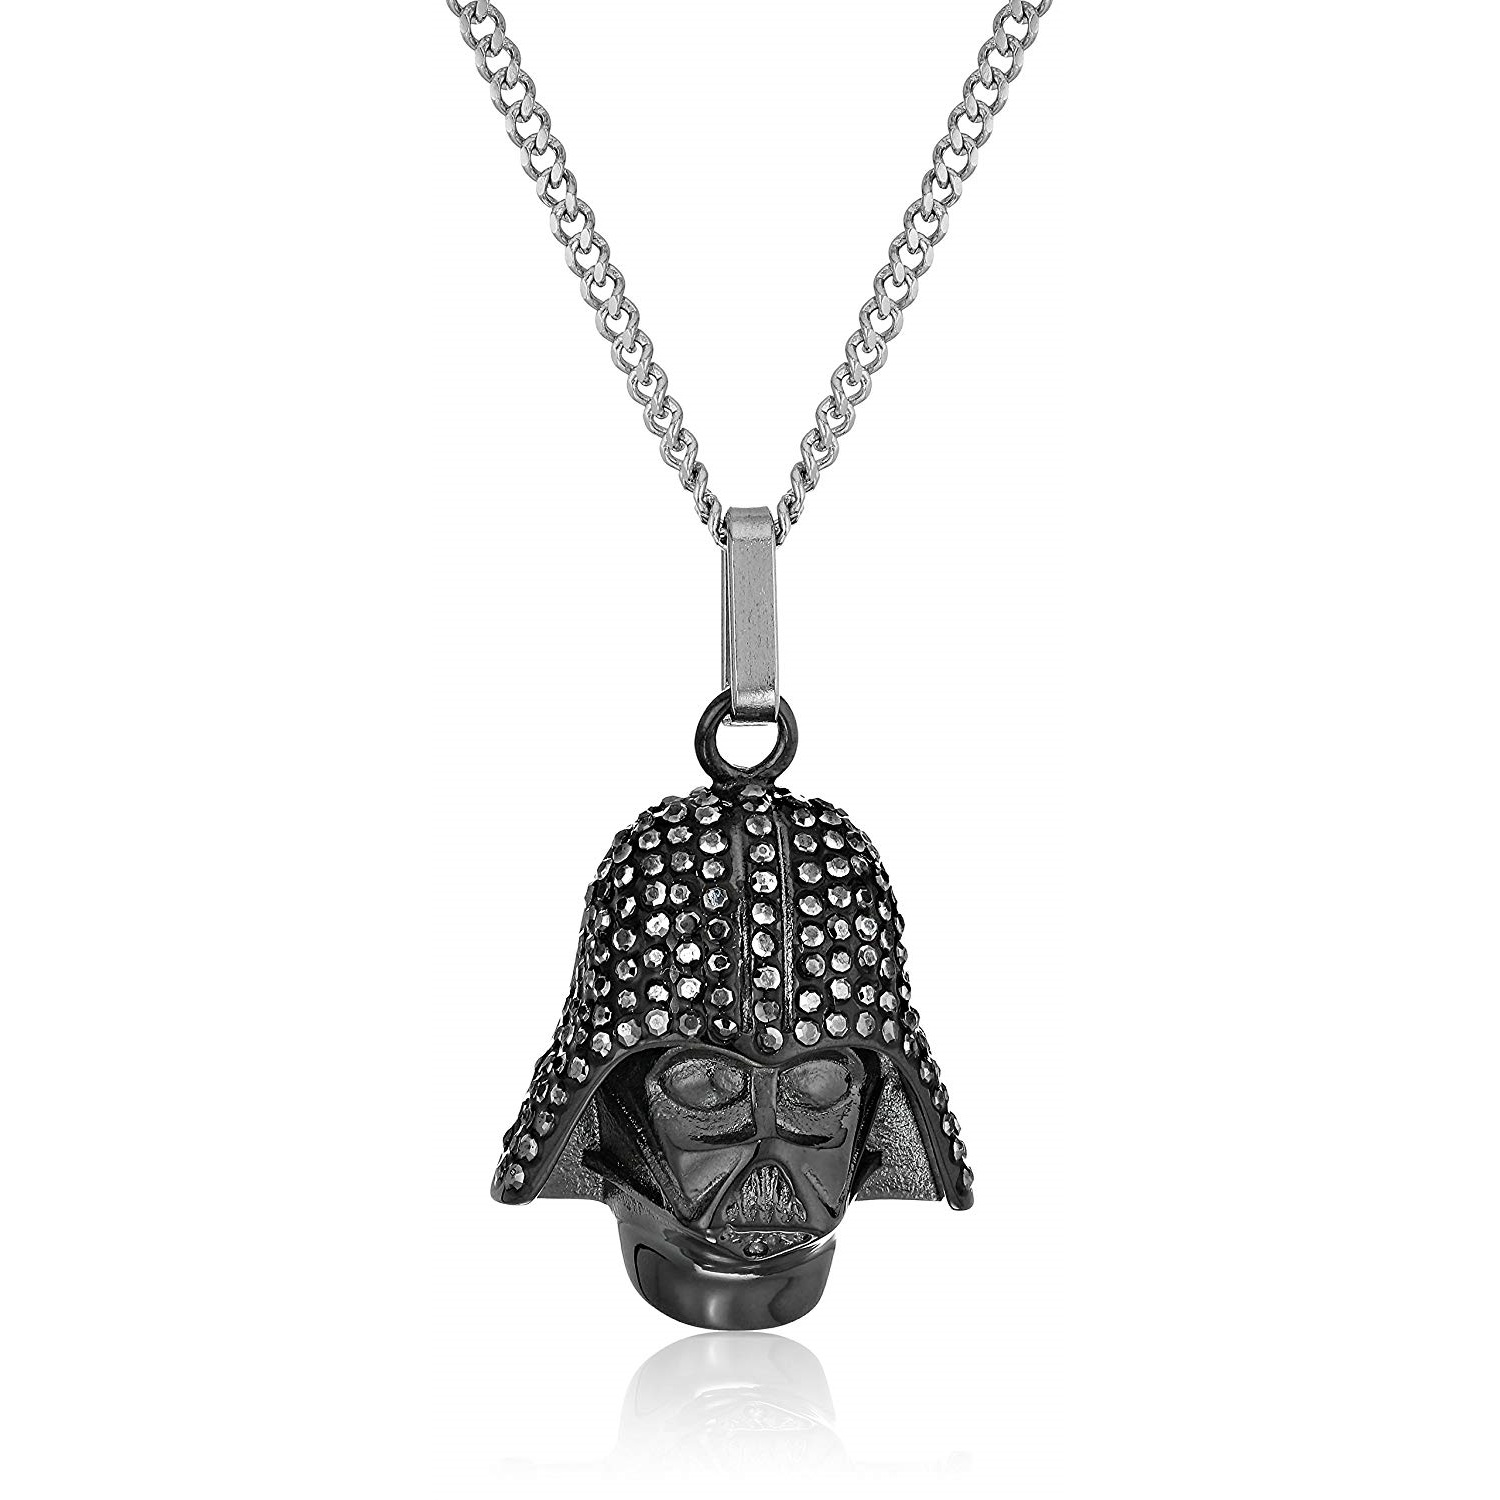 Body Vibe x Star Wars Darth Vader Rhinestone Necklace on Amazon